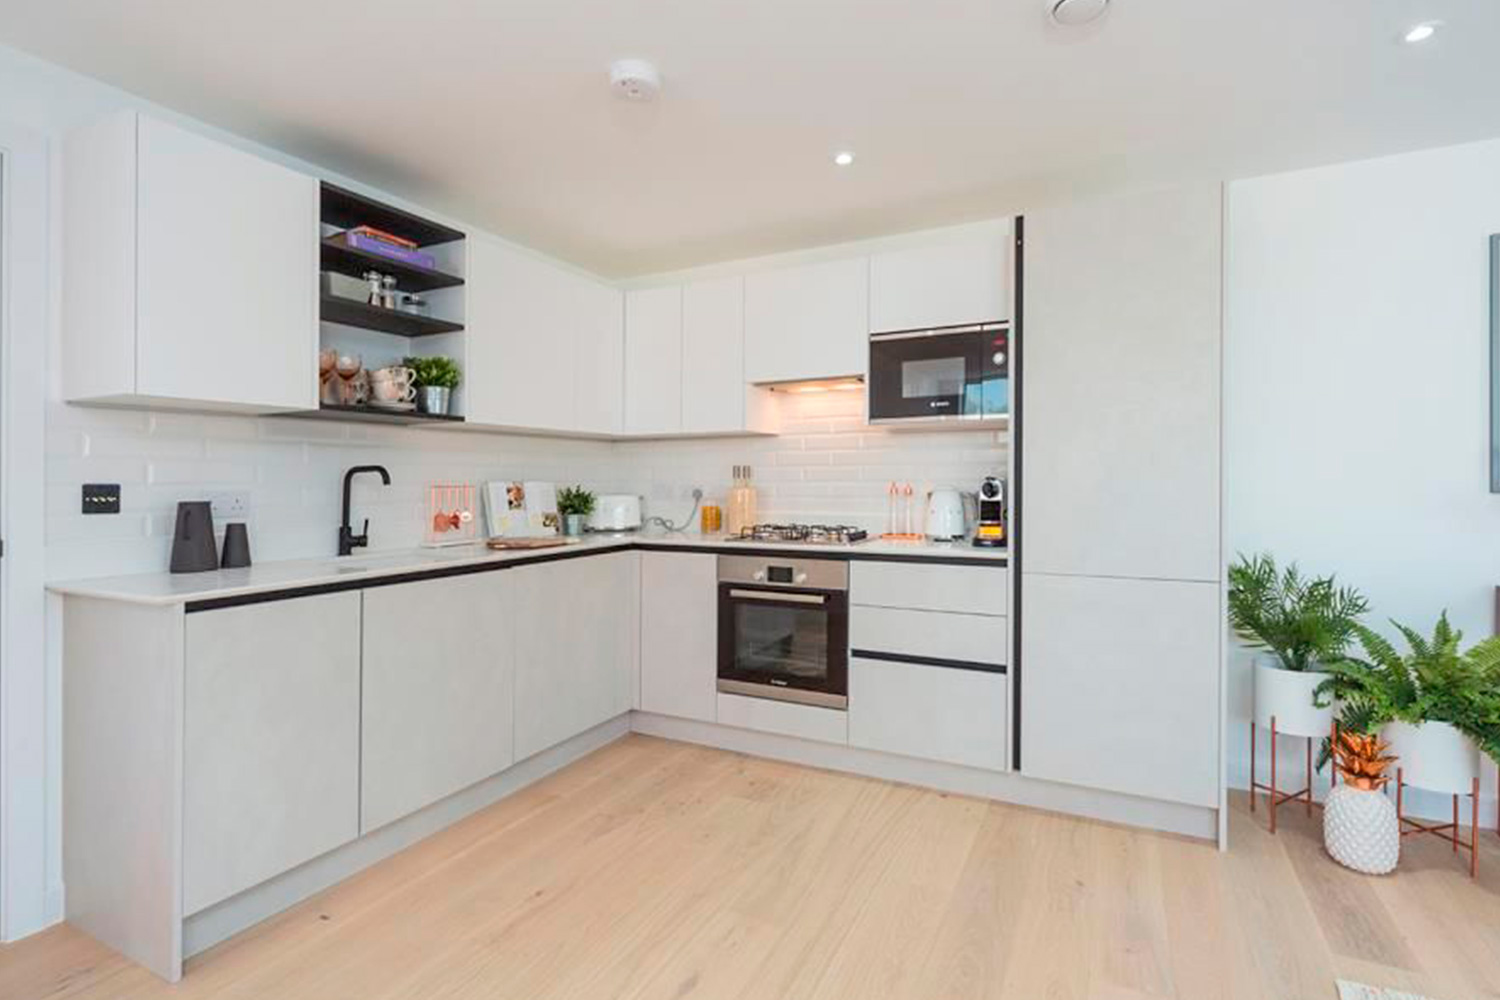 Full equipped white kitchen